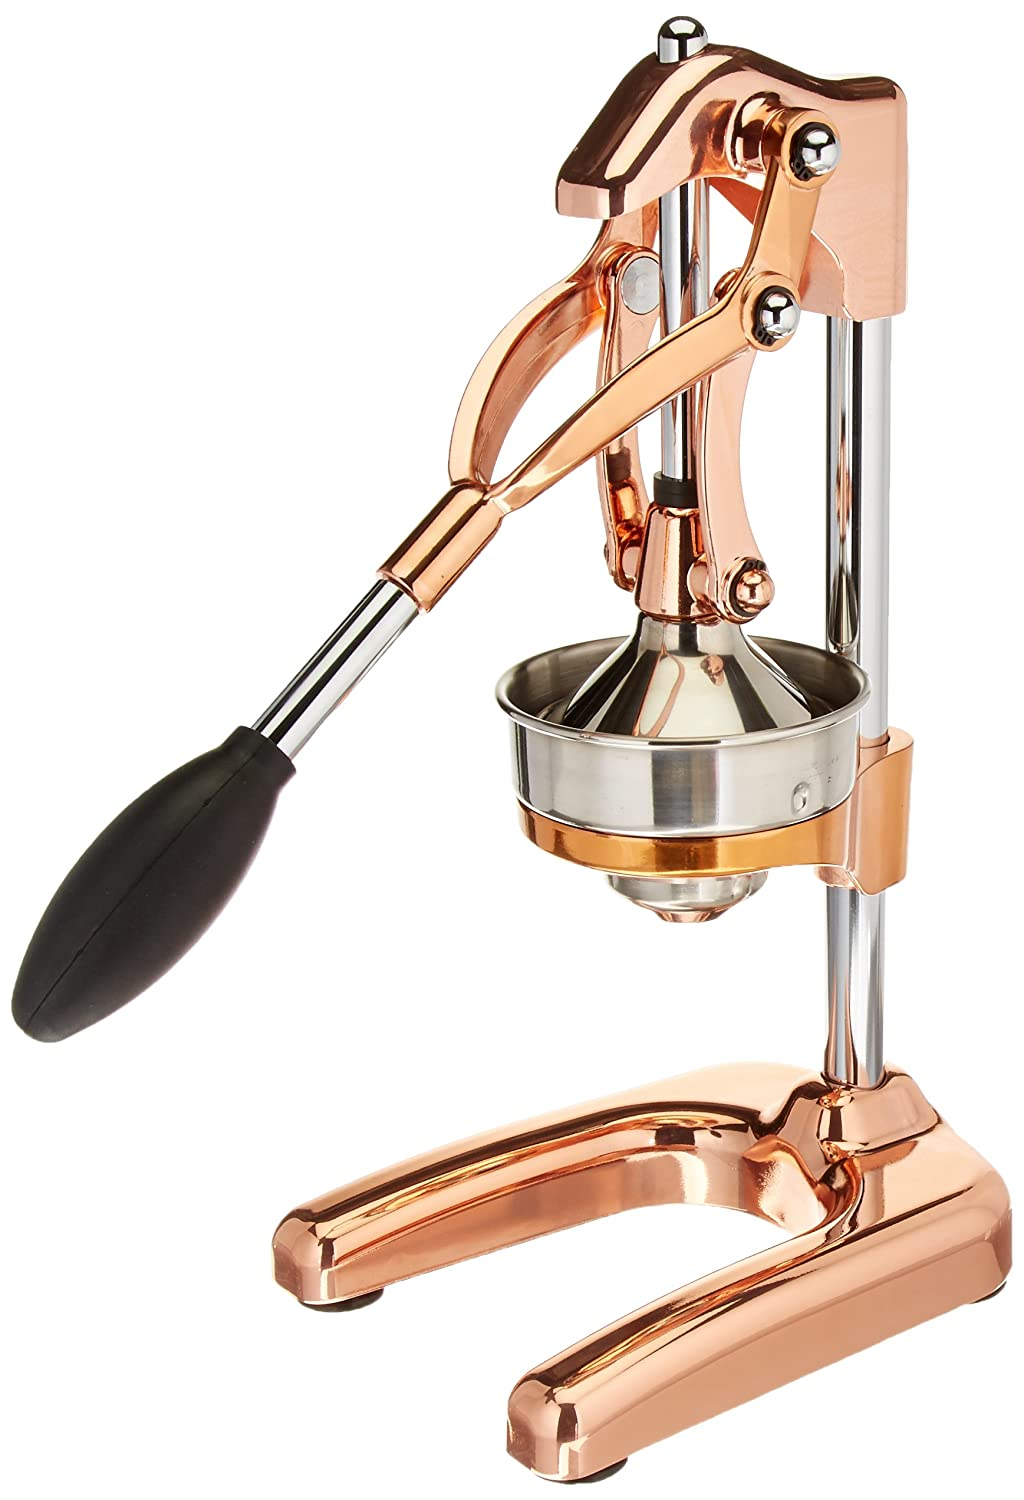 Cilio Commercial Grade Citrus Press Juicer, Copper